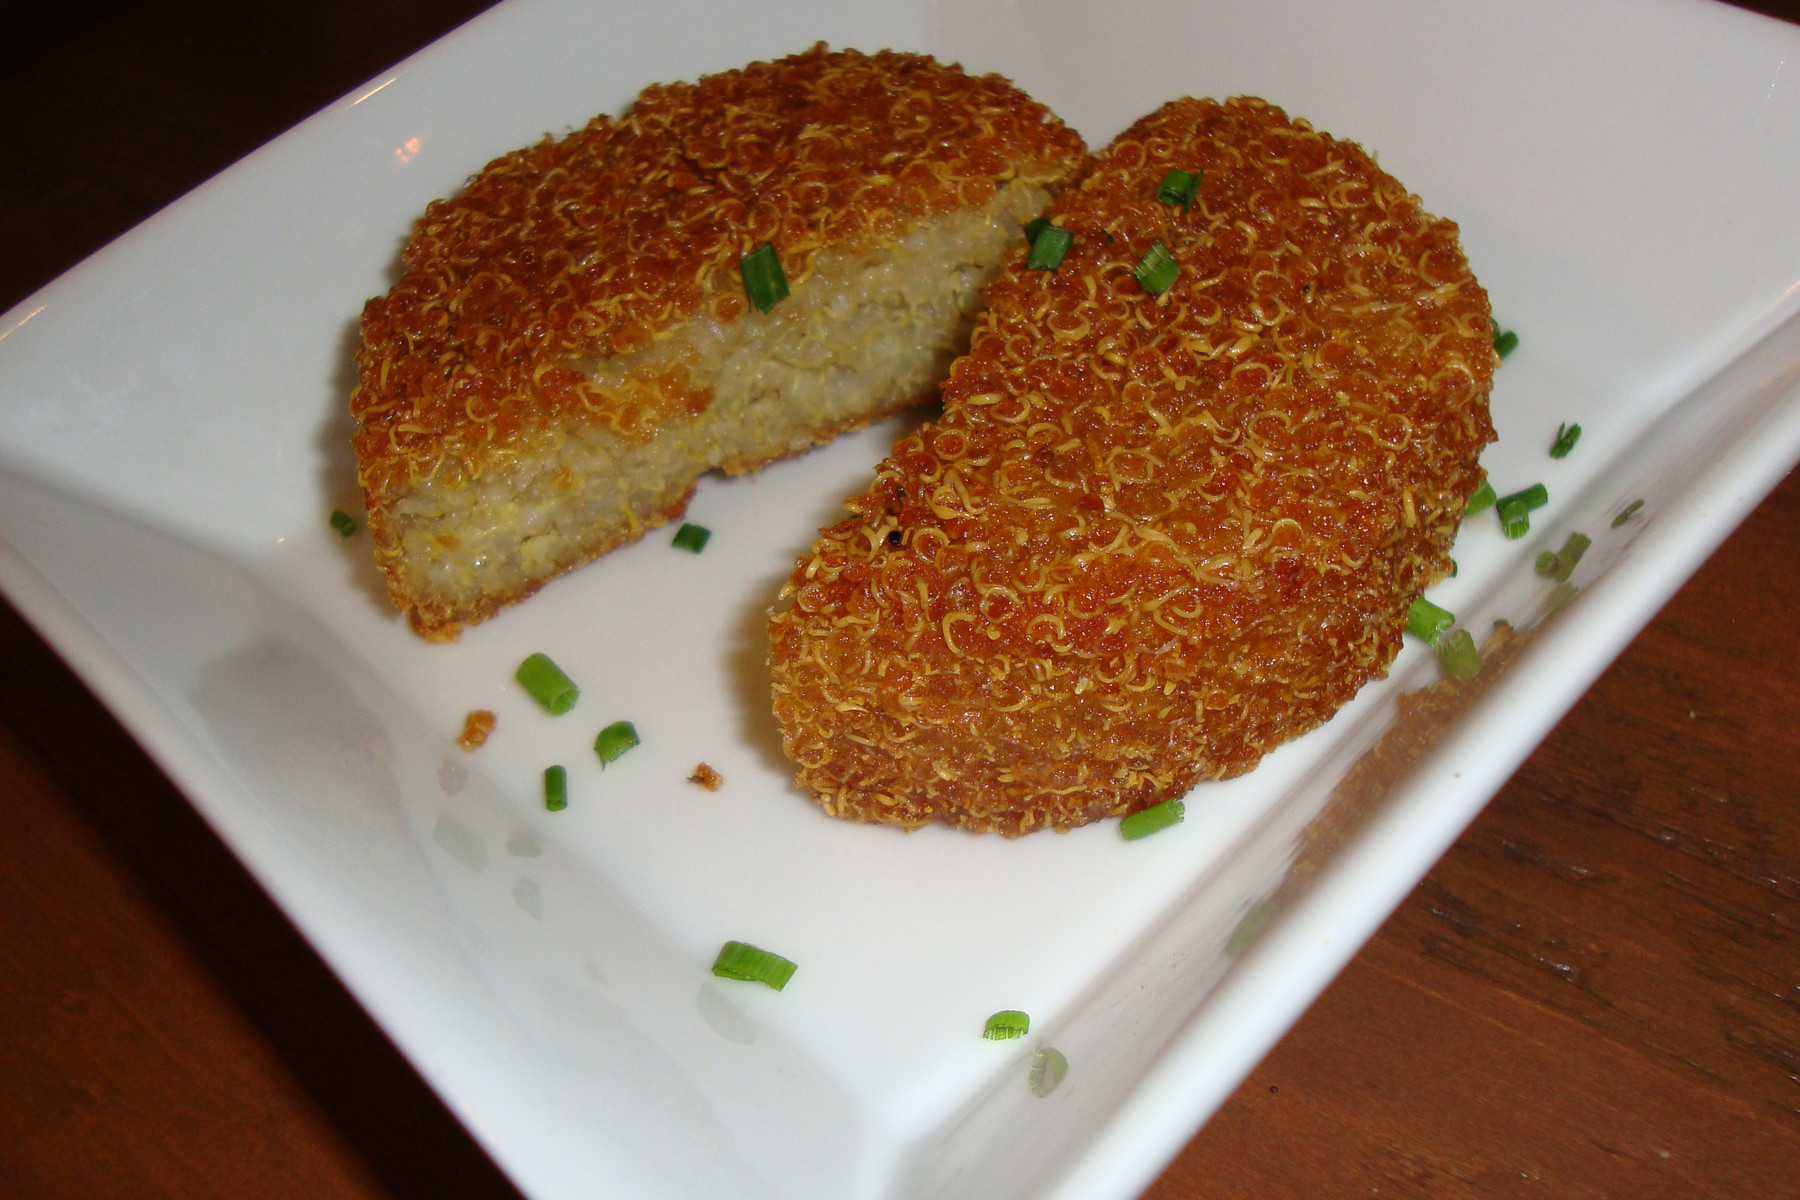 The crispy quinoa cake from the side item menu could benefit from a drizzle of sauce.